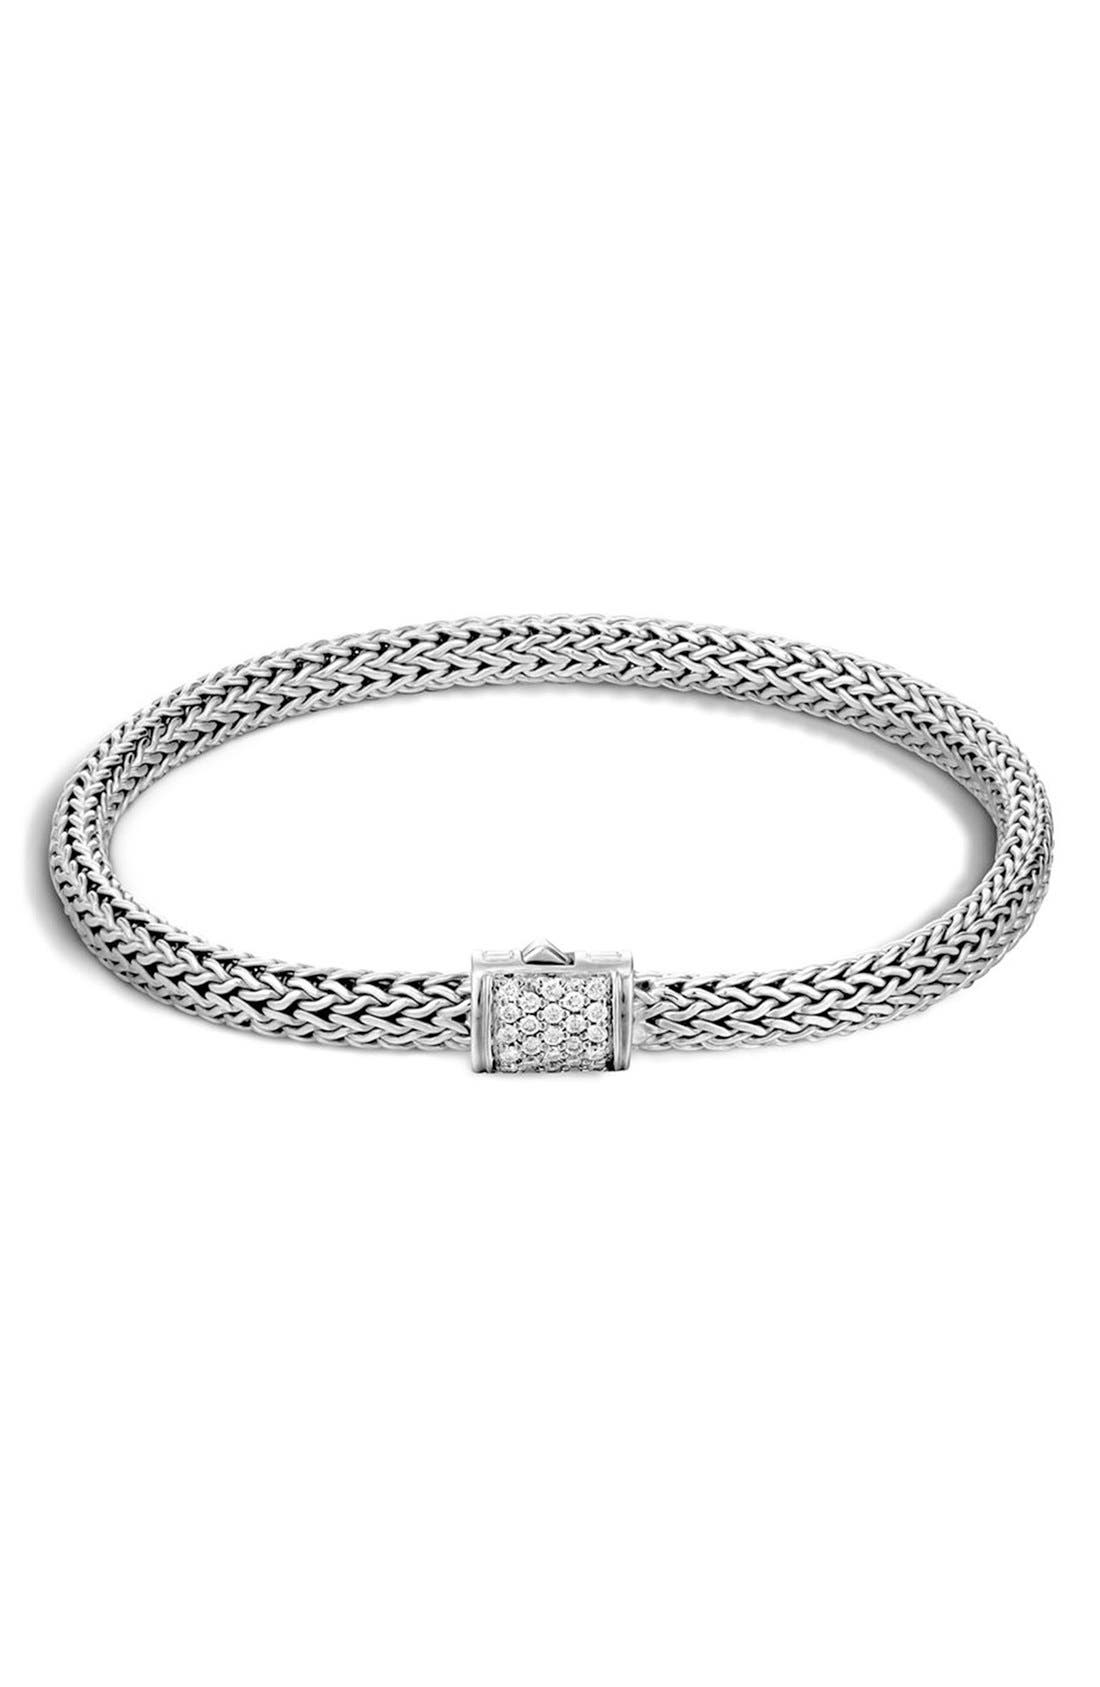 Alternate Image 1 Selected - John Hardy Extra Small Chain Bracelet with Diamond Clasp